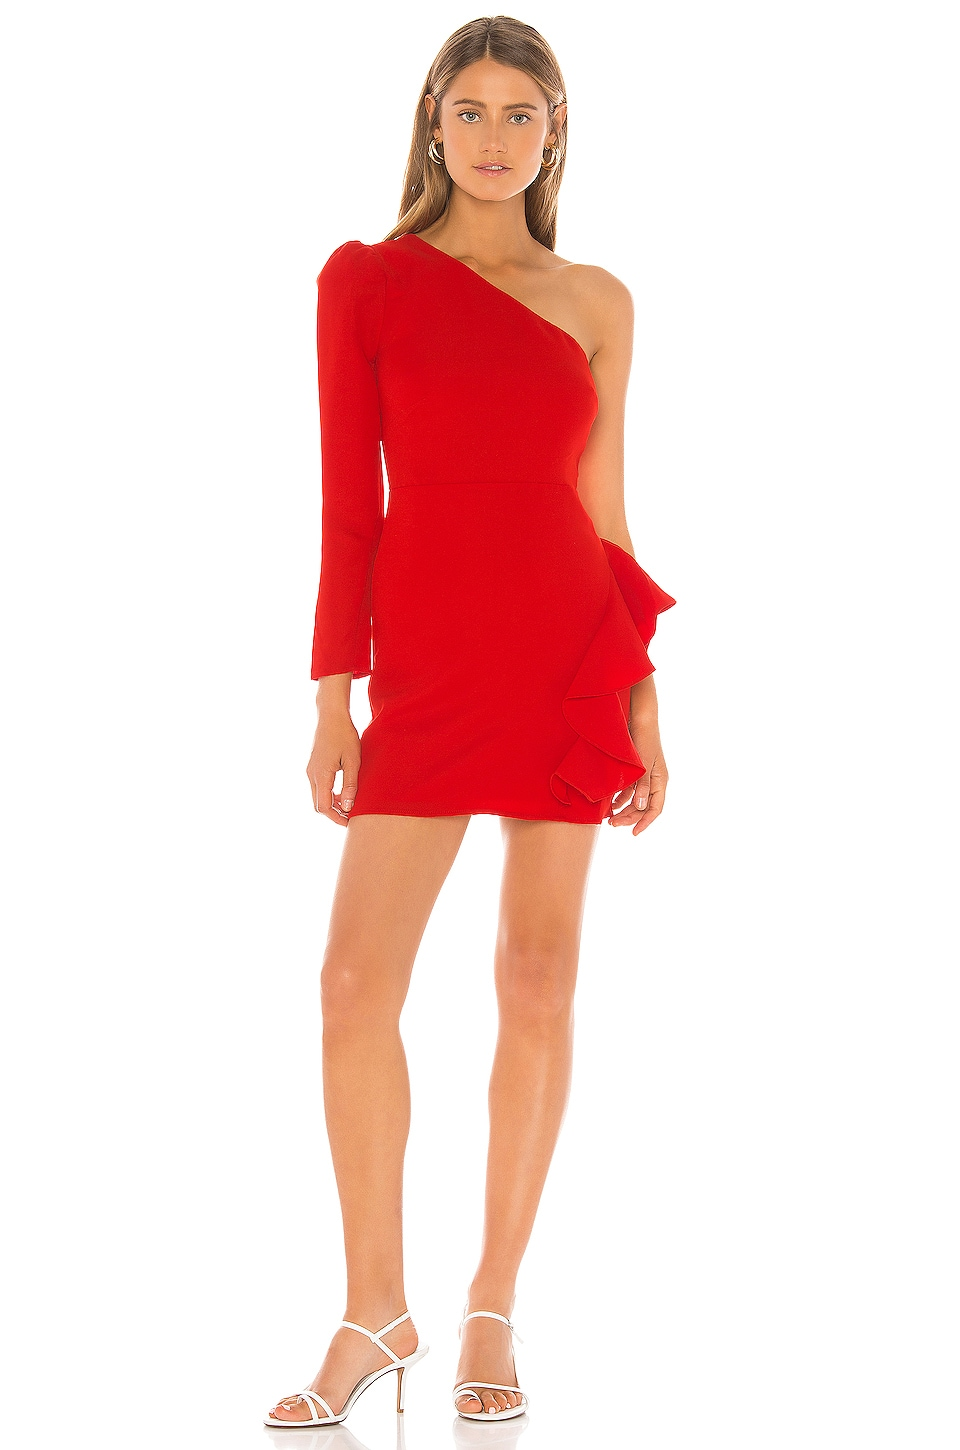 Lovers + Friends Jett Mini Dress in Red